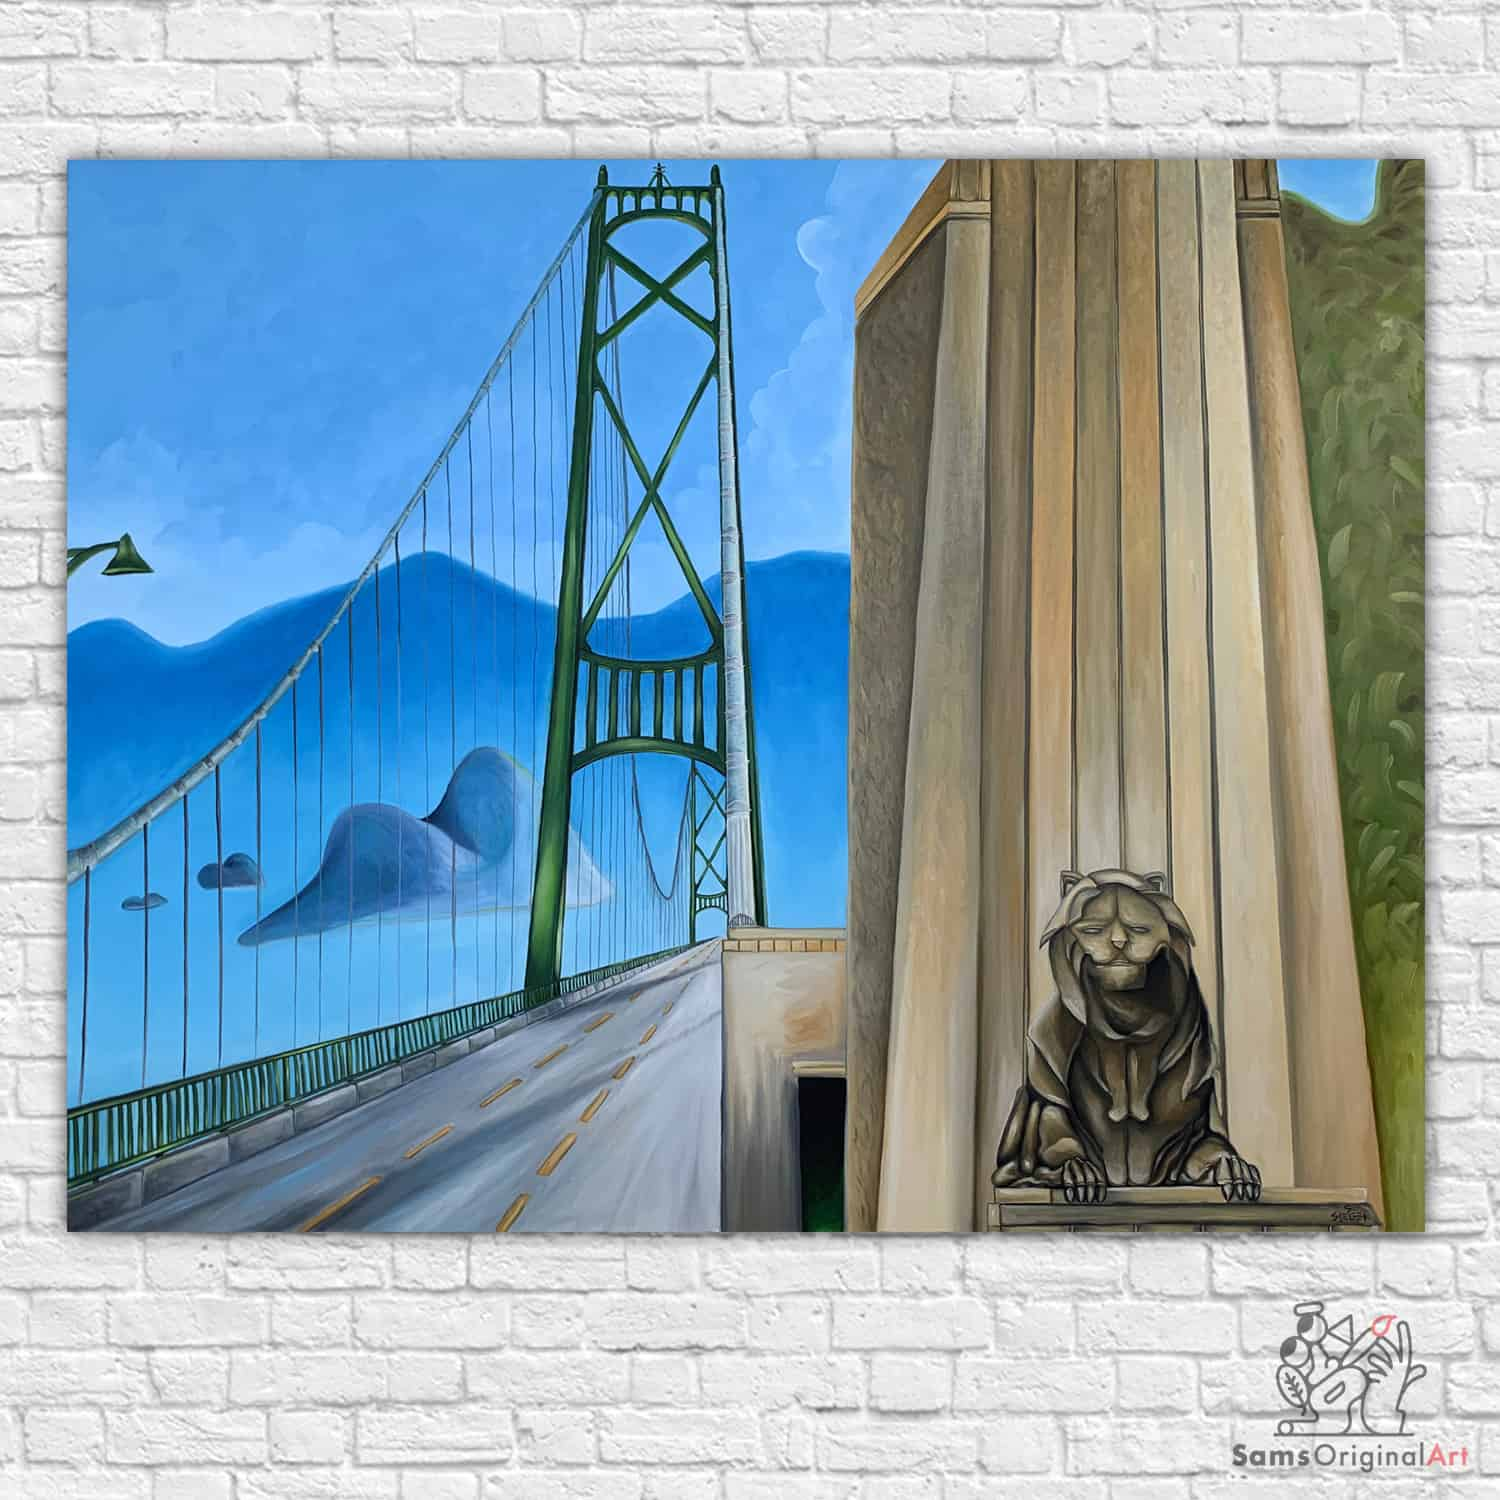 Painting of the lions gate bridge